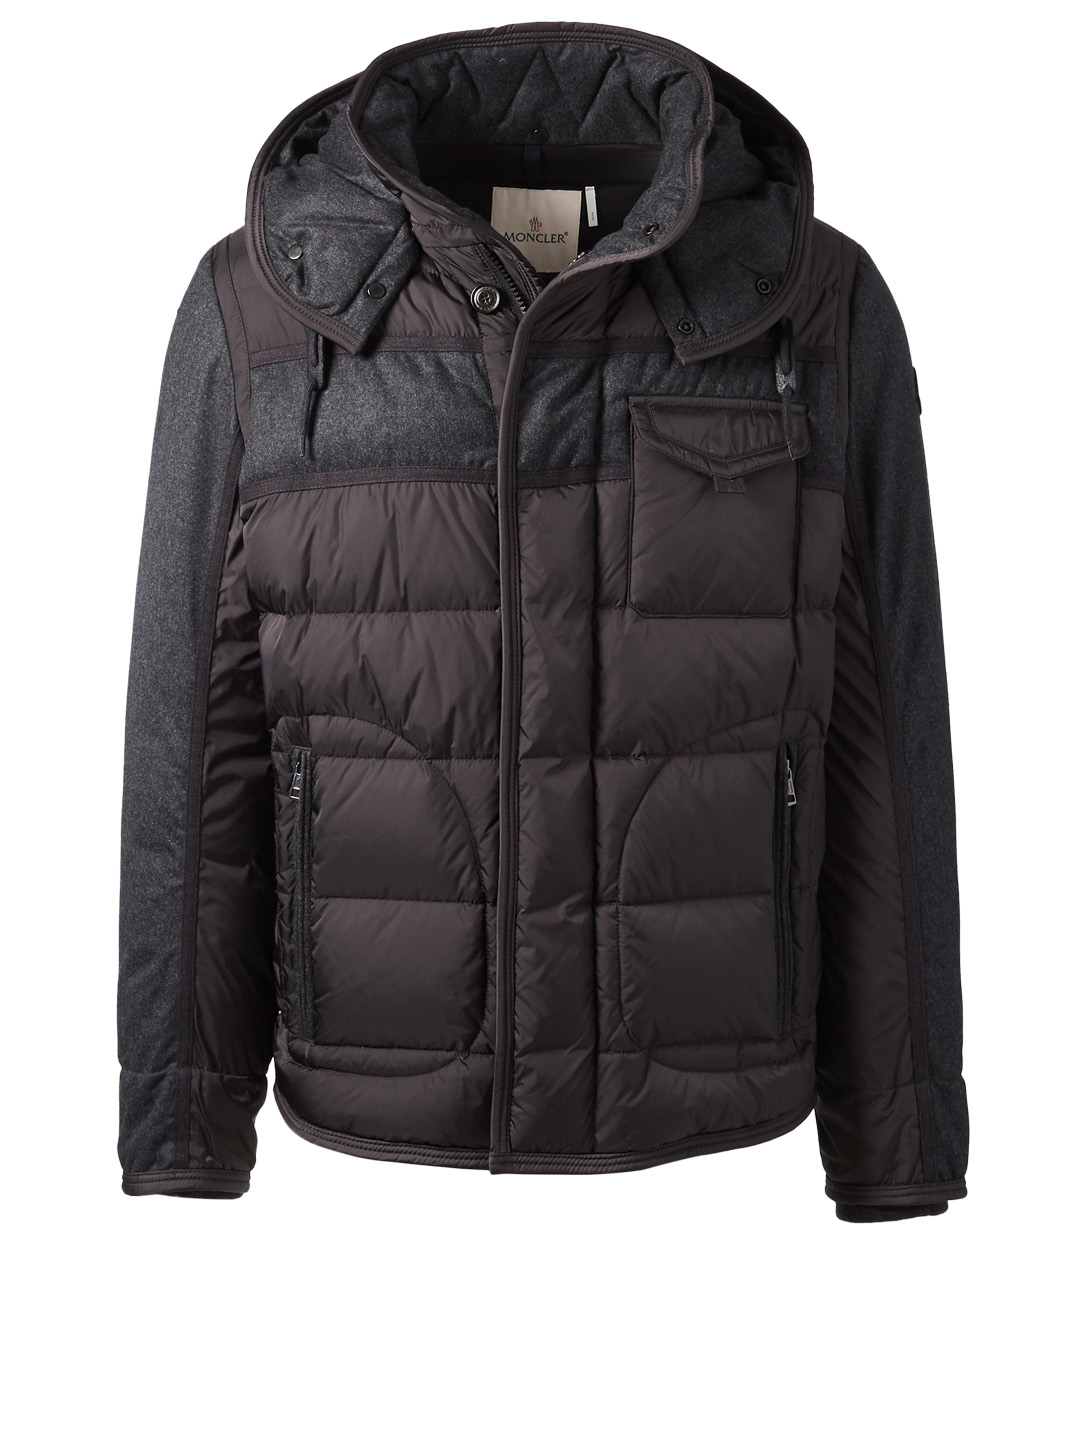 MONCLER Ryan Quilted Down Jacket Men's Grey